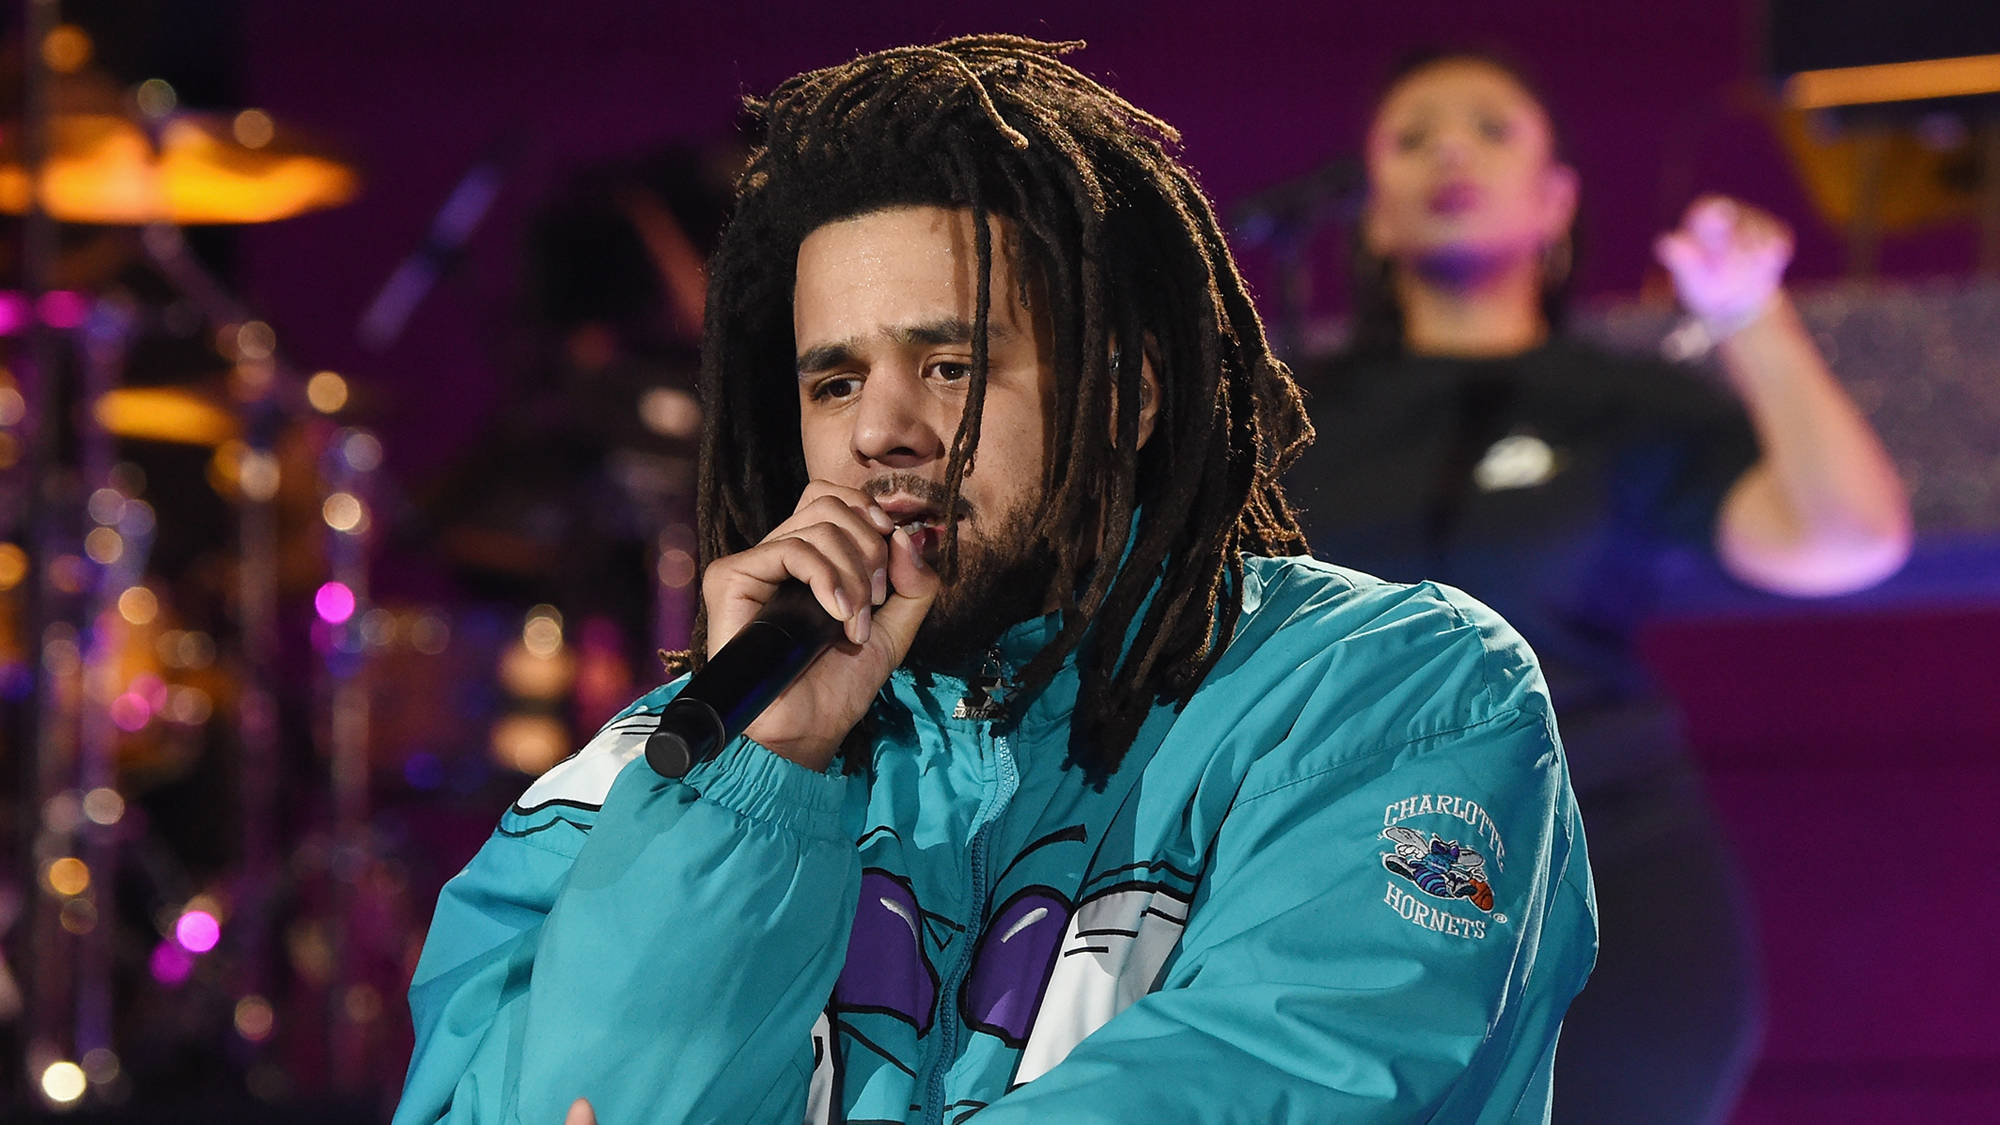 J. Cole new album 'The Fall Off' 2020: release date, songs ...